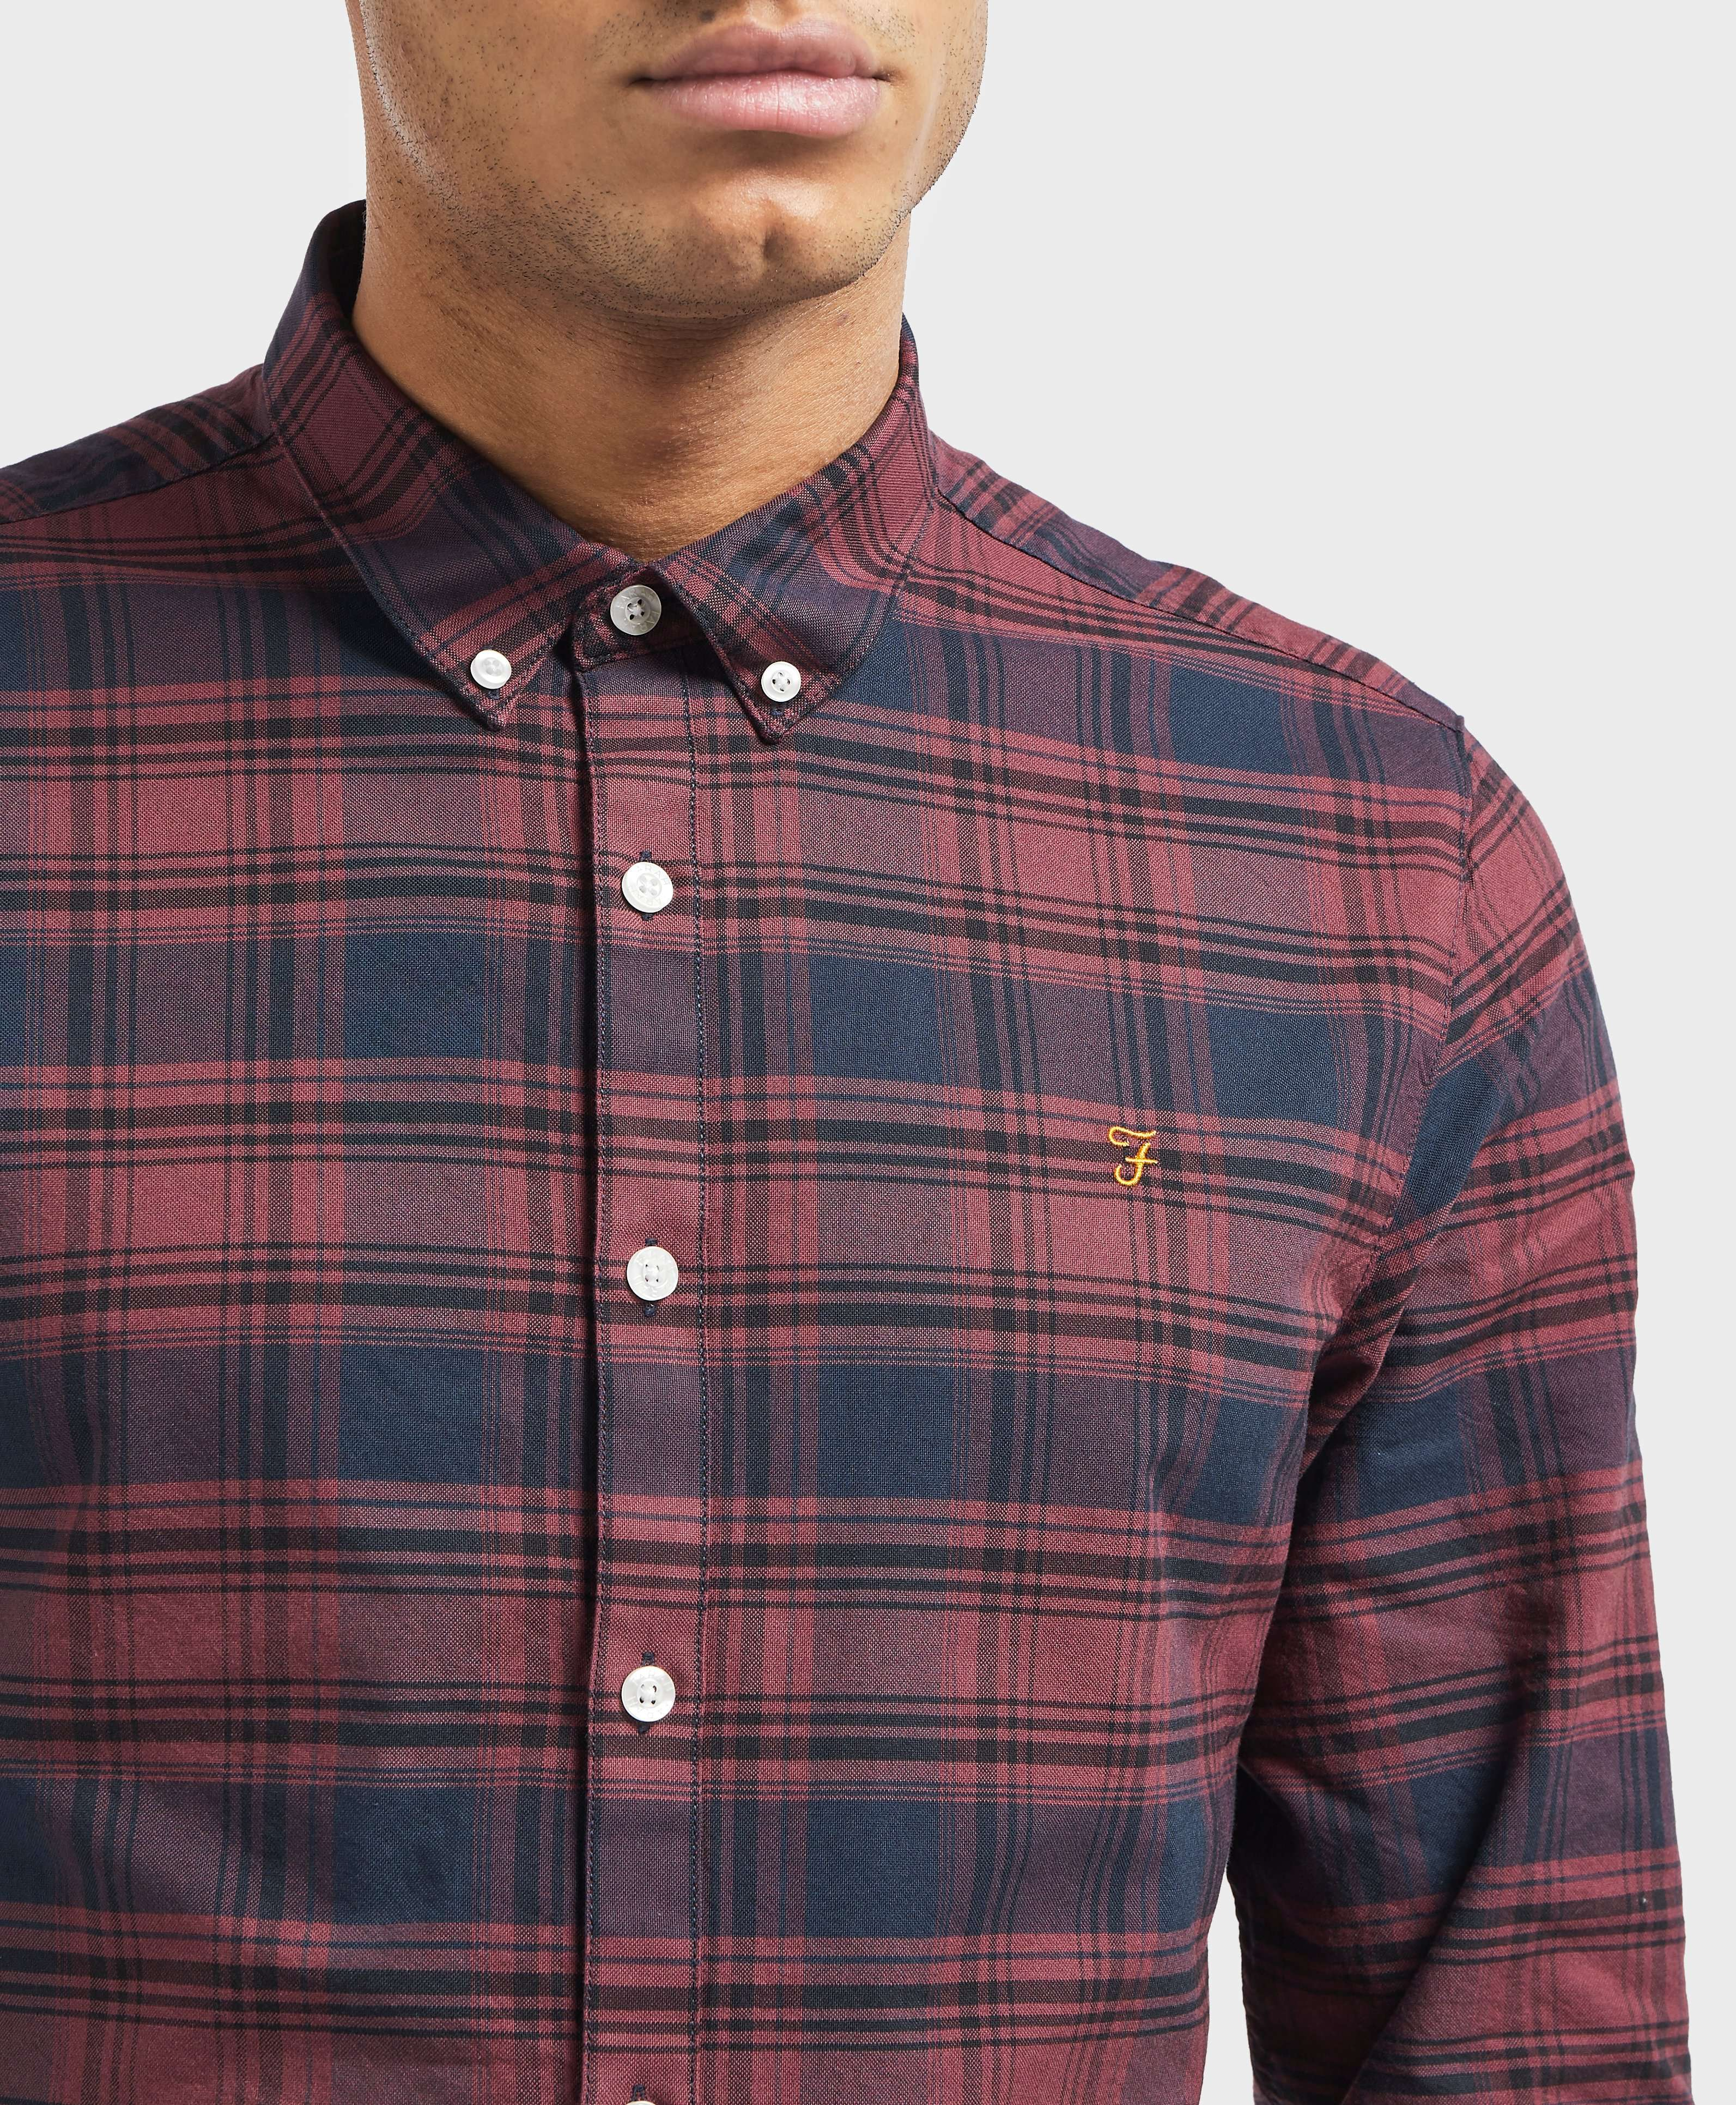 Farah Check Long Sleeve Shirt - Online Exclusive